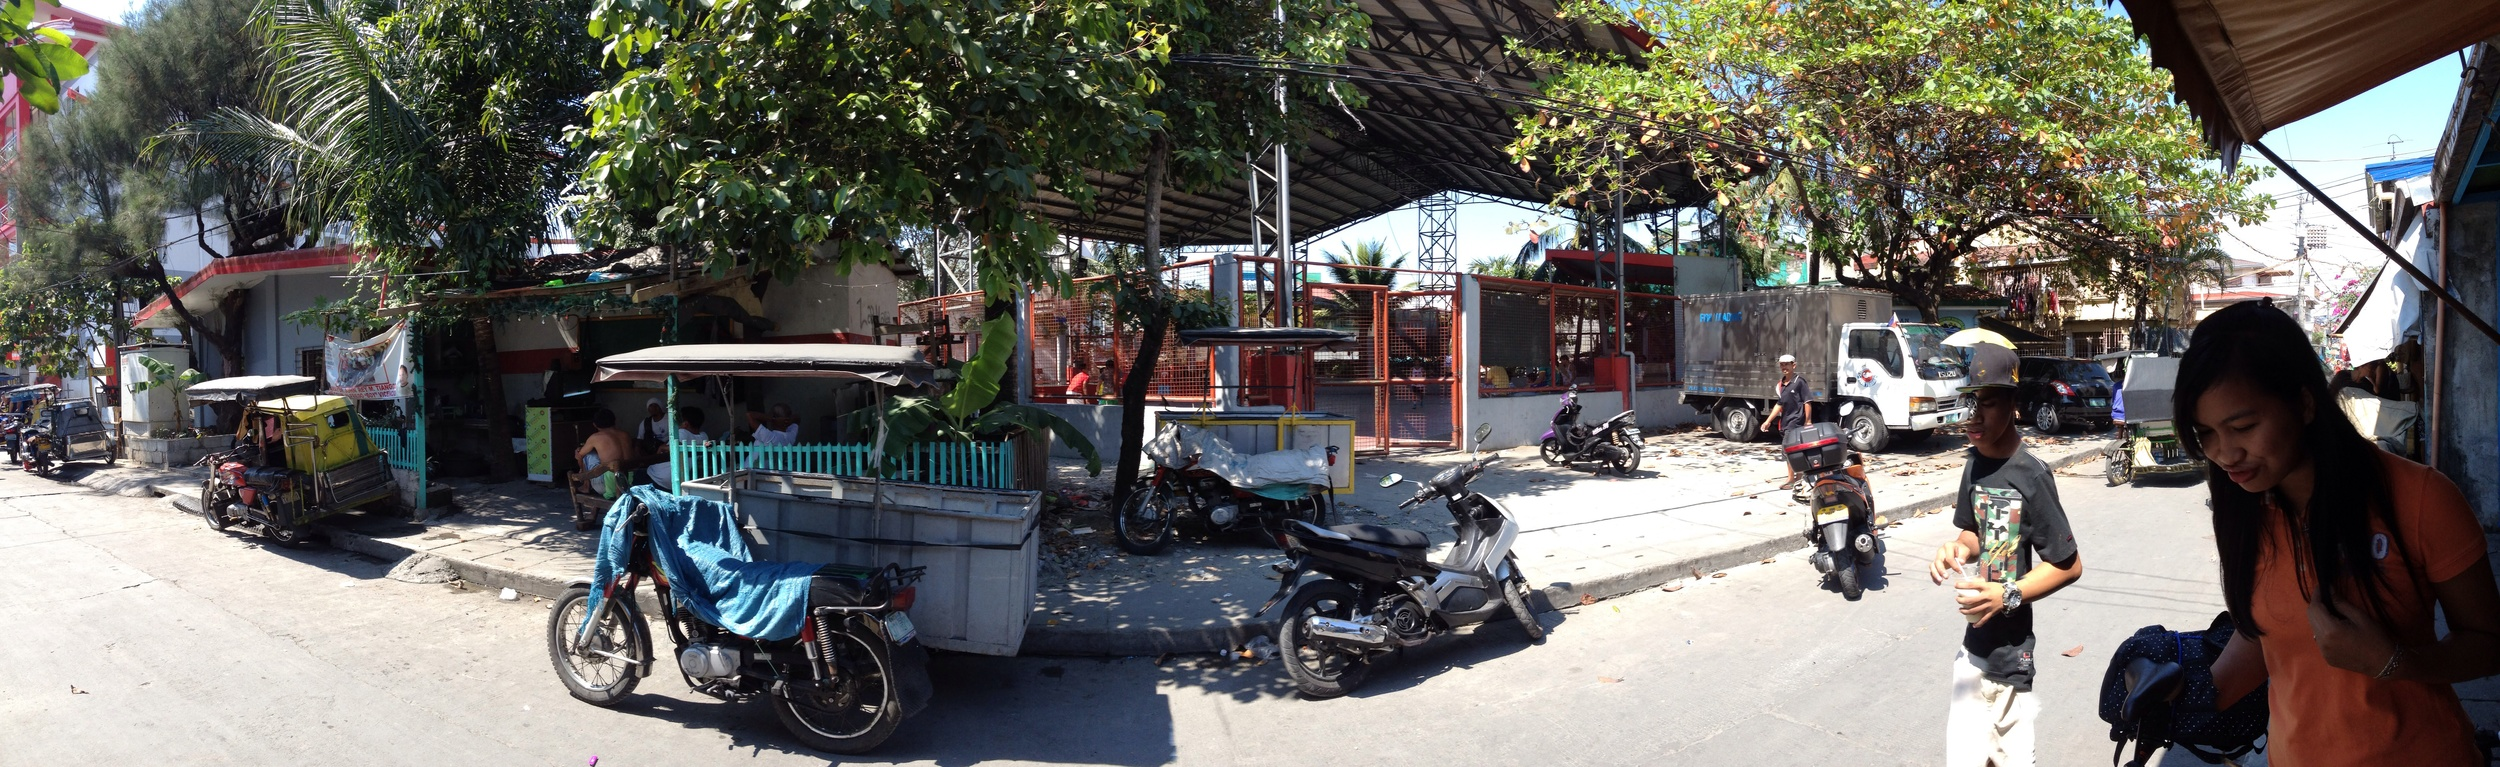 From left to right: barangay hall, tricycle association office, basketball court, day care center